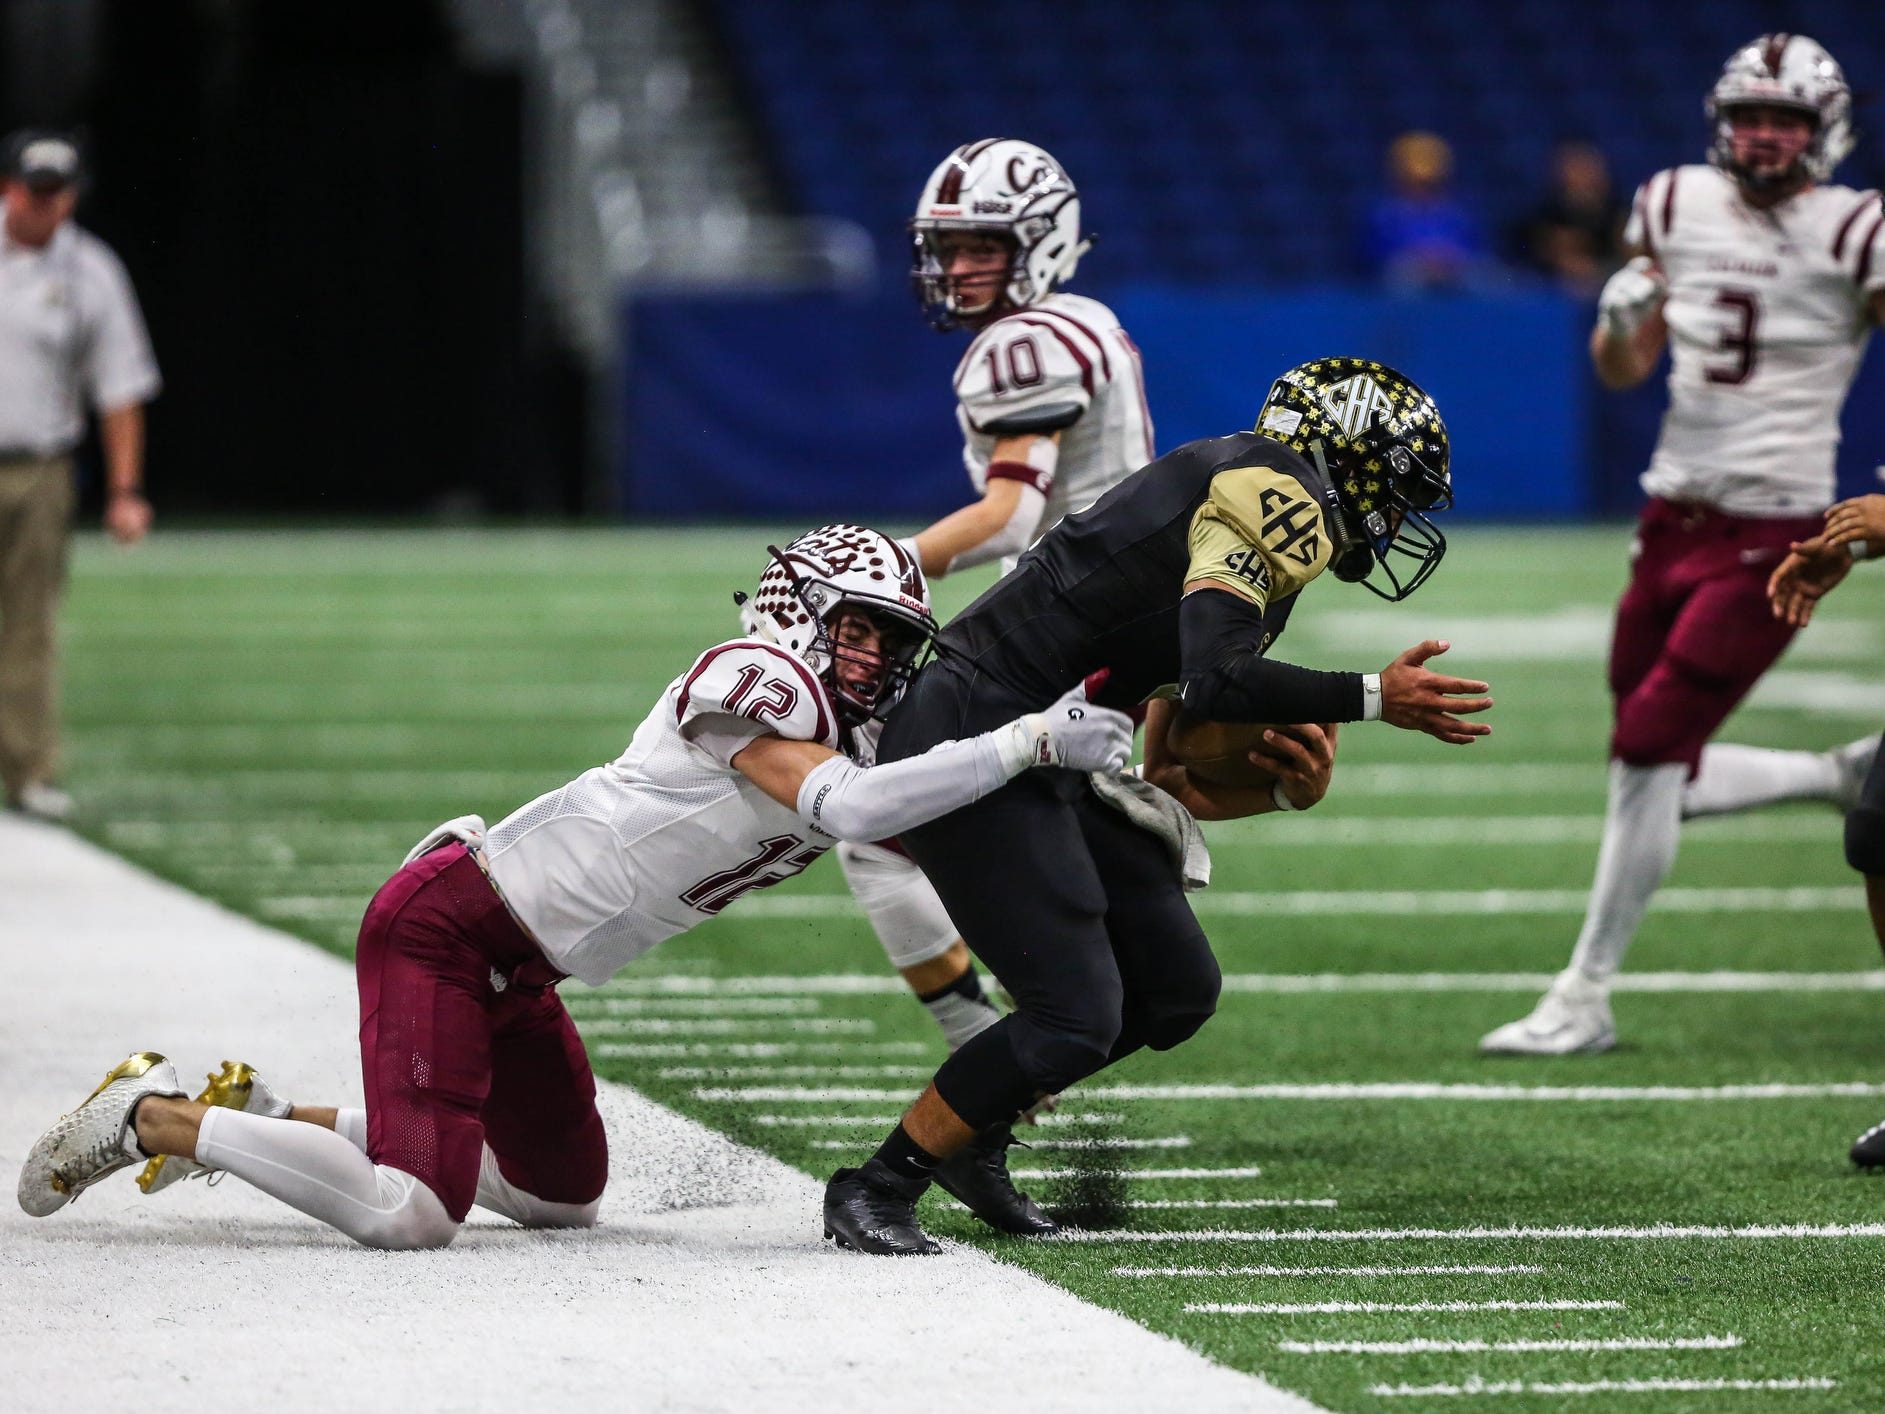 Calallen's Rivers Roy takes down Calhoun's Daniel Martinez during Friday's game at the Alamodome.